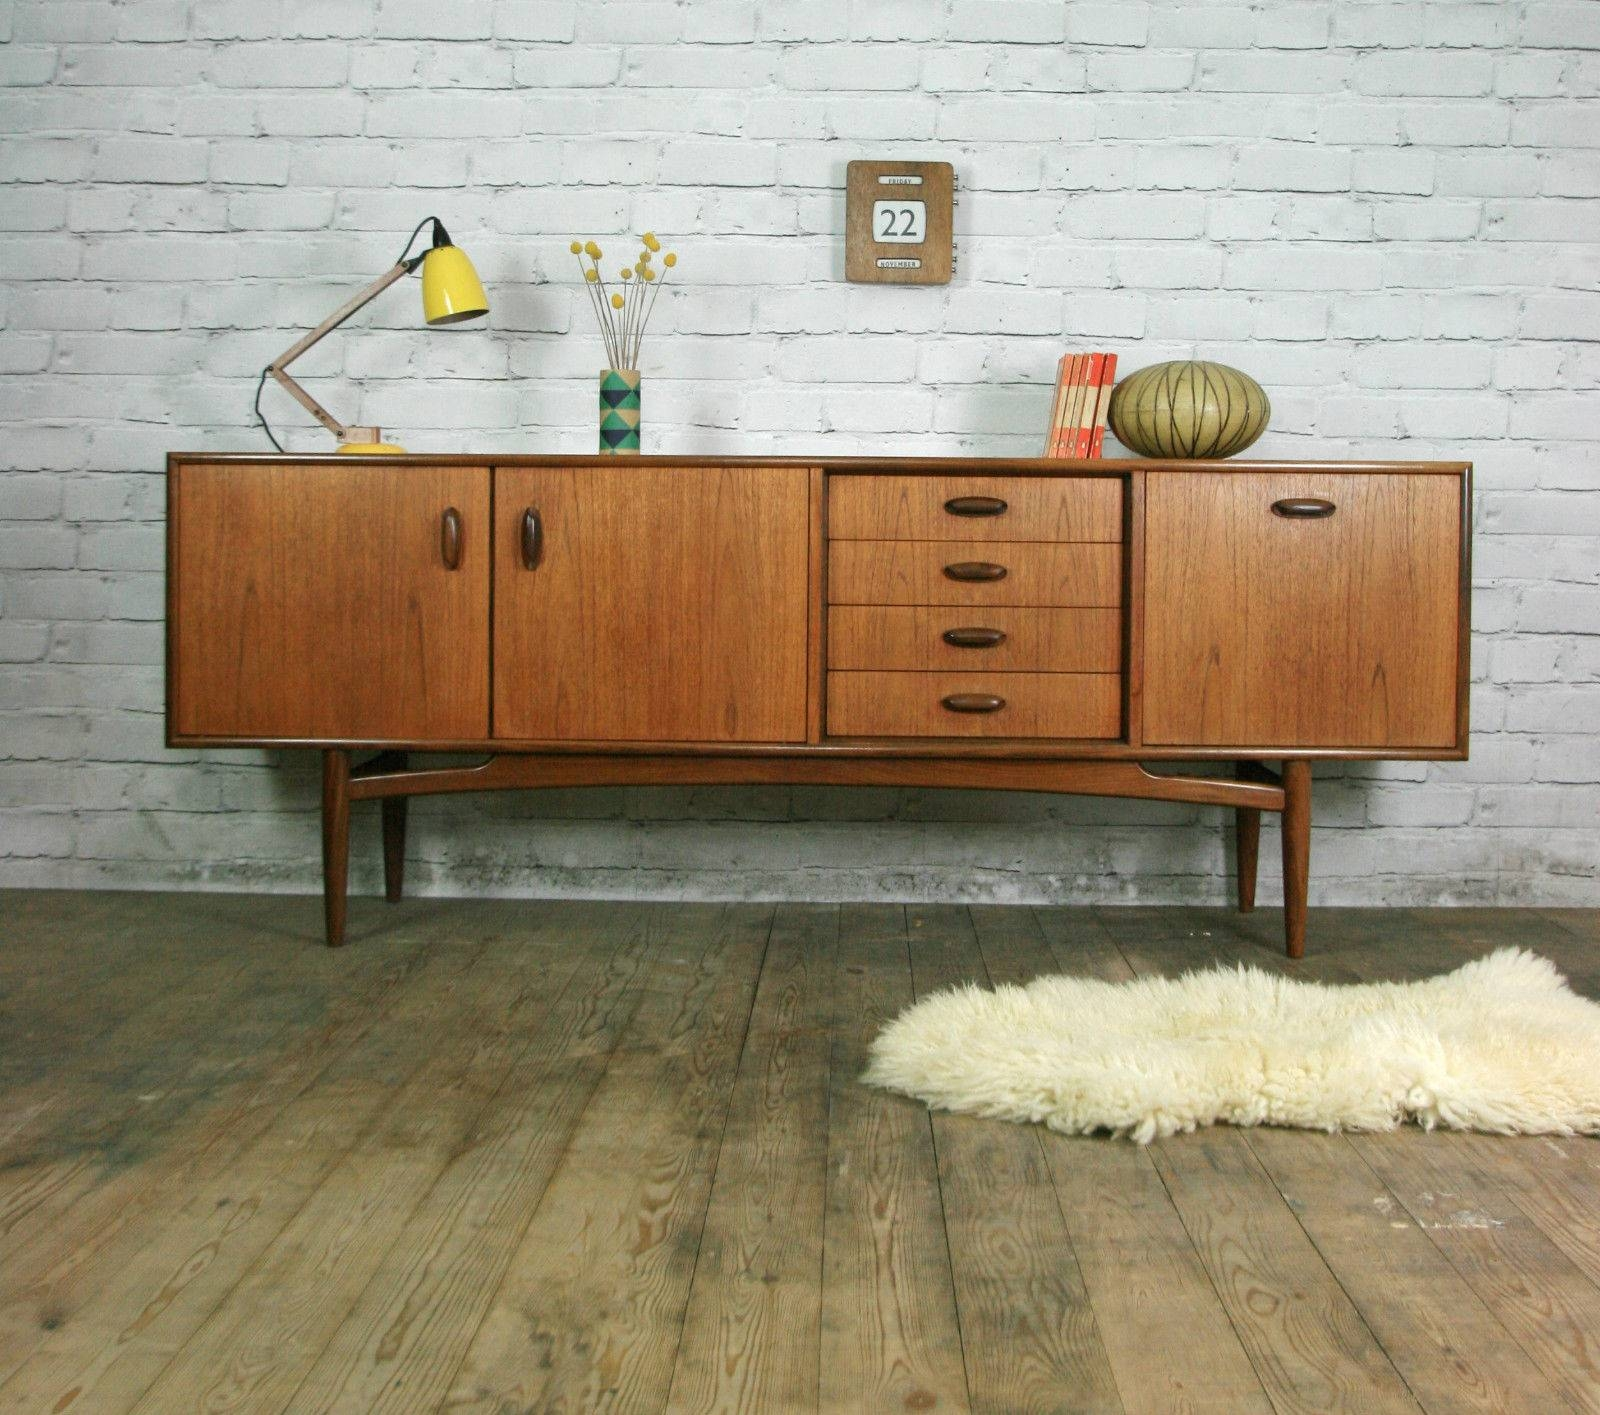 Popular Photo of G Plan Vintage Sideboards